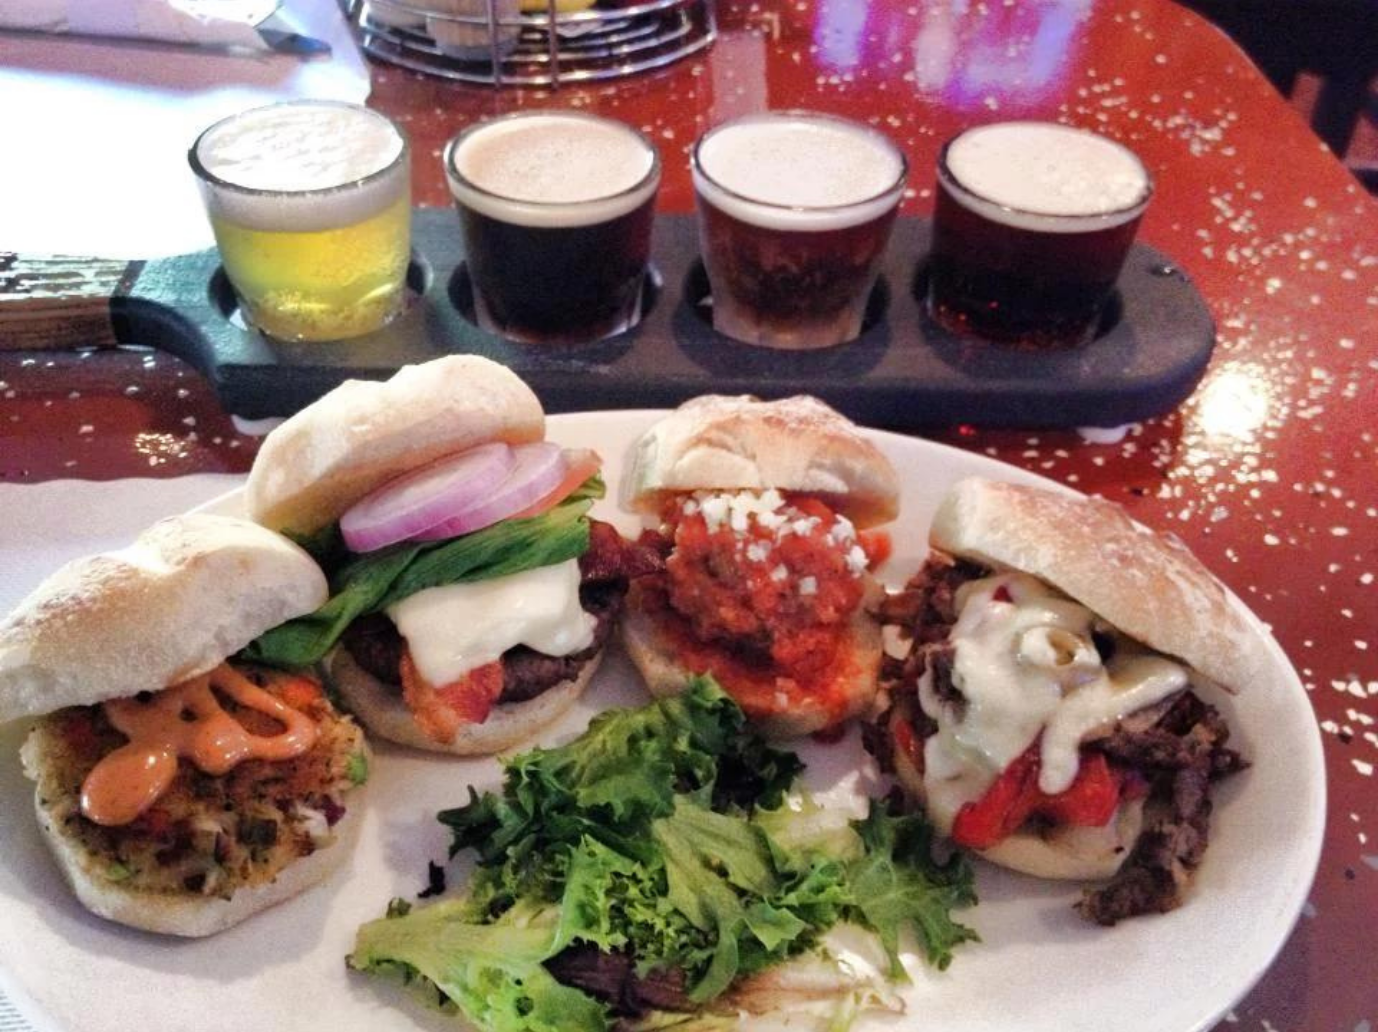 penfield-pourhouse-sliders